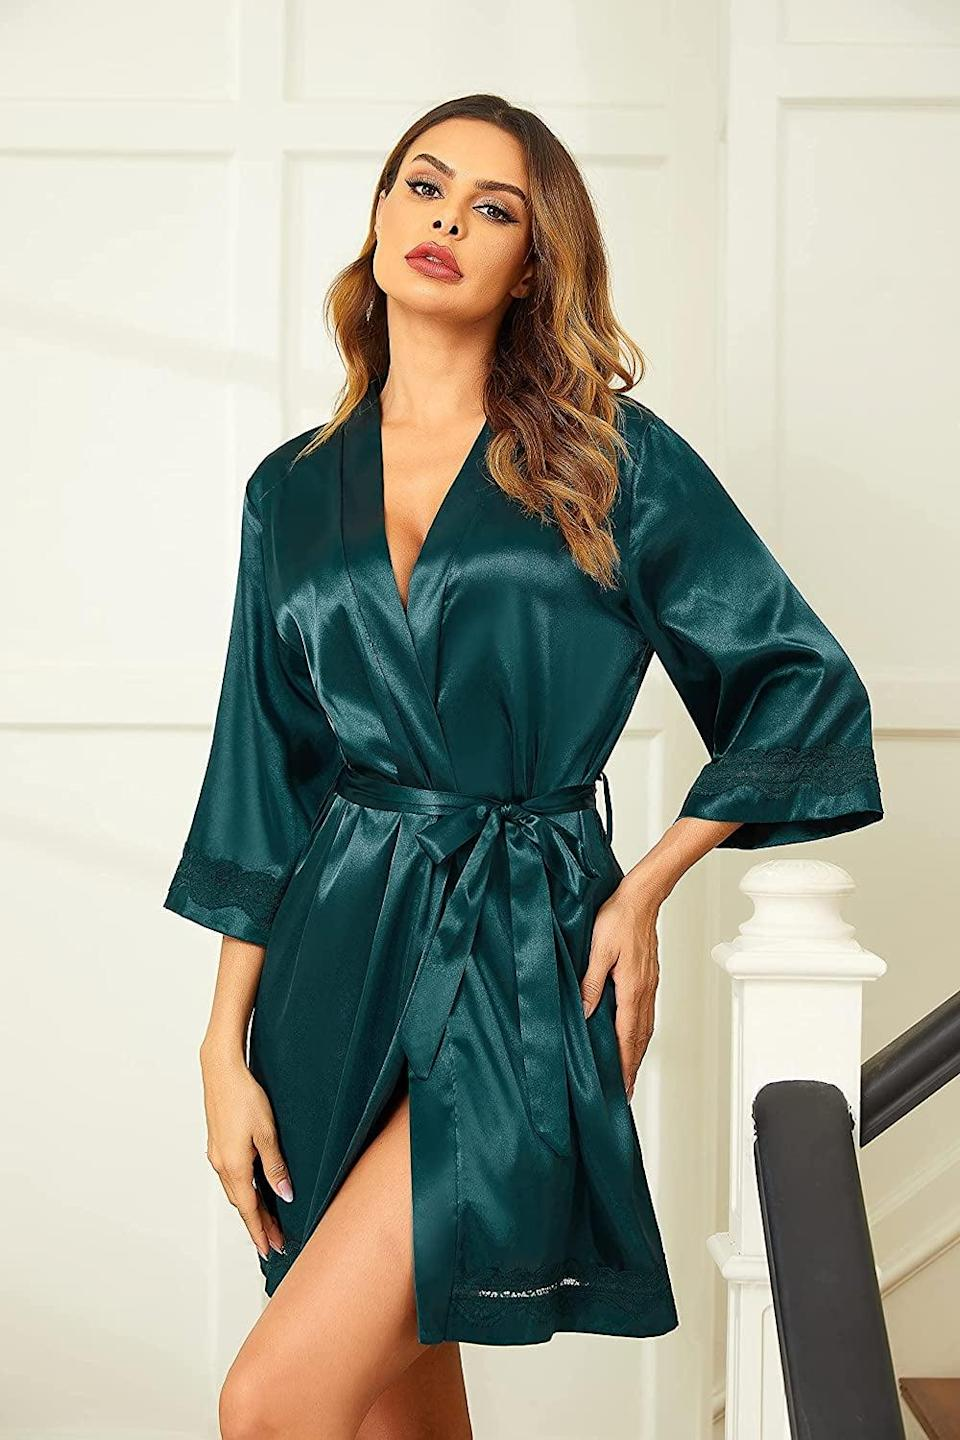 <p>If they're all about that fabulous, luxurious vibe, they'll obsess over this <span>Ekouaer Women's Lace-Trim Kimono Style Short Satin Robe Sleepwear</span> ($26). It will make them feel like royalty. Plus, it comes in a ton of different colors and patterns so you can choose their favorite color.</p>